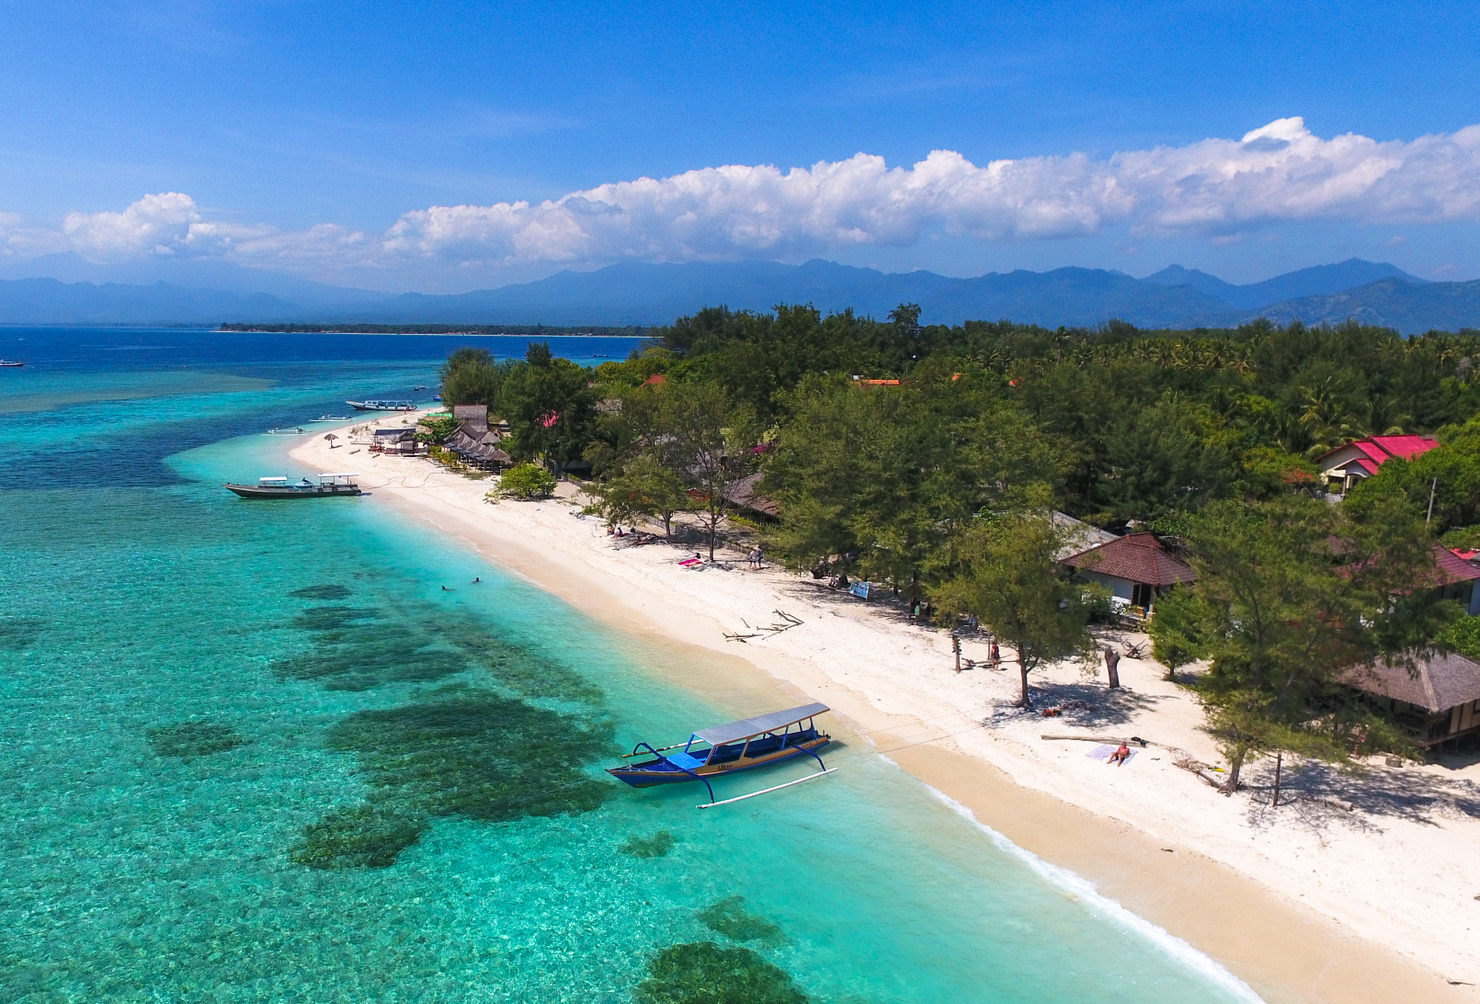 Beaches and Waterfalls, Reasons Why Bali is the Perfect Honeymoon Destination